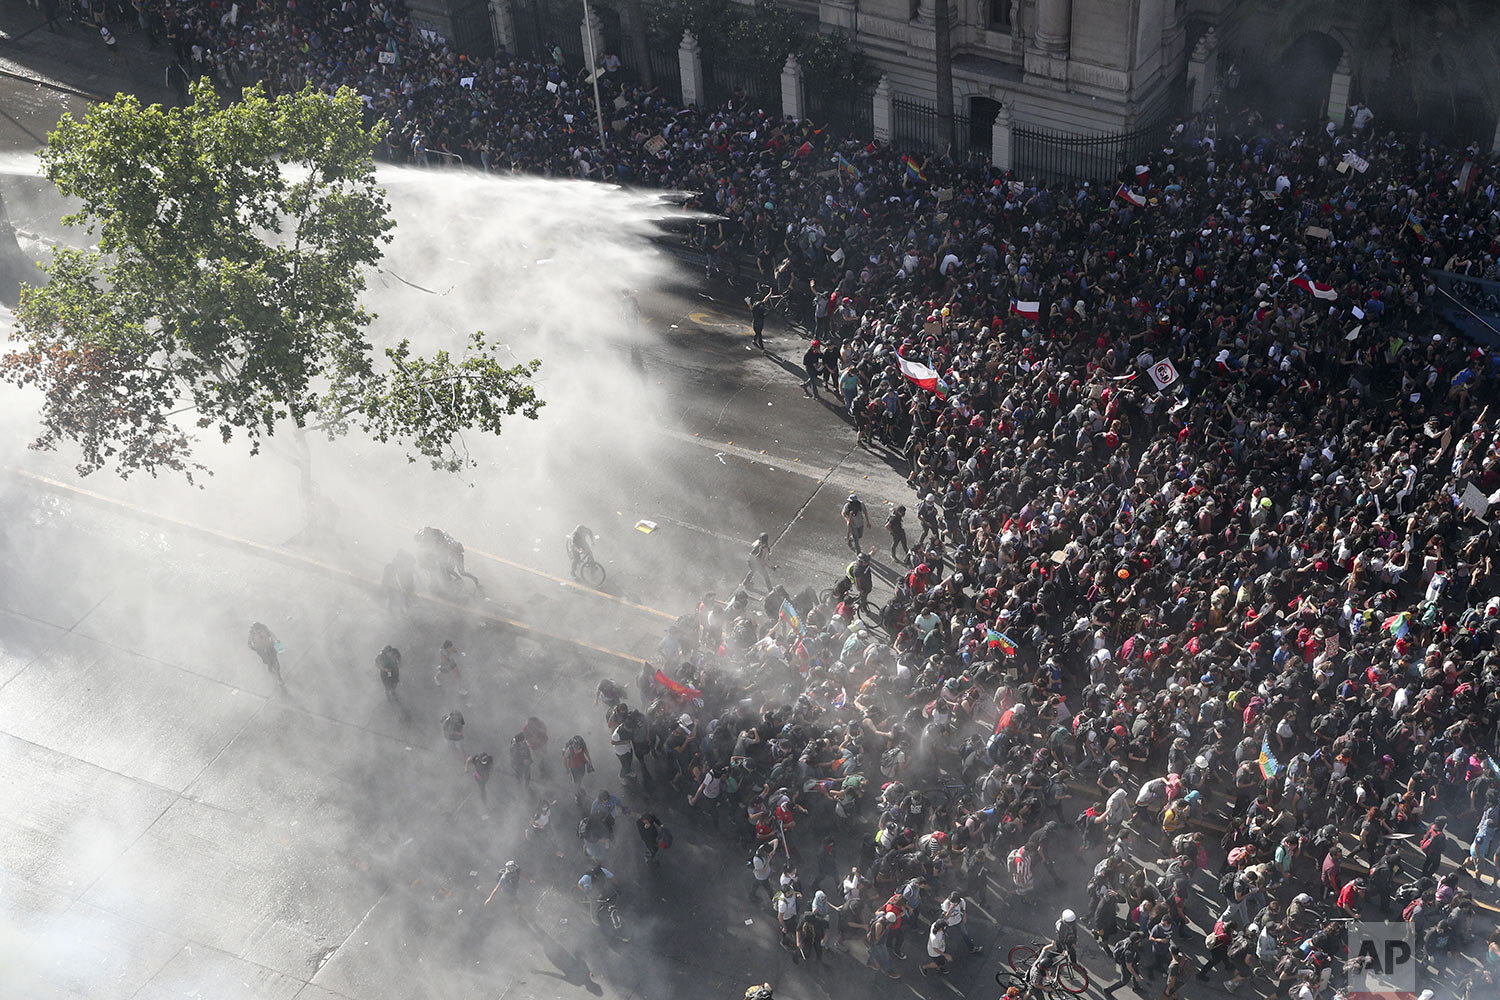 Police sprays water on anti-government demonstrators in Santiago, Chile, Monday, Oct. 28, 2019. President Sebastian Pinera announced changes in his cabinet in hopes of bringing peace back to the streets after days of protests that originally started over a hike in subway fares and have grown into a wider range of demands. (AP Photo/Esteban Felix)